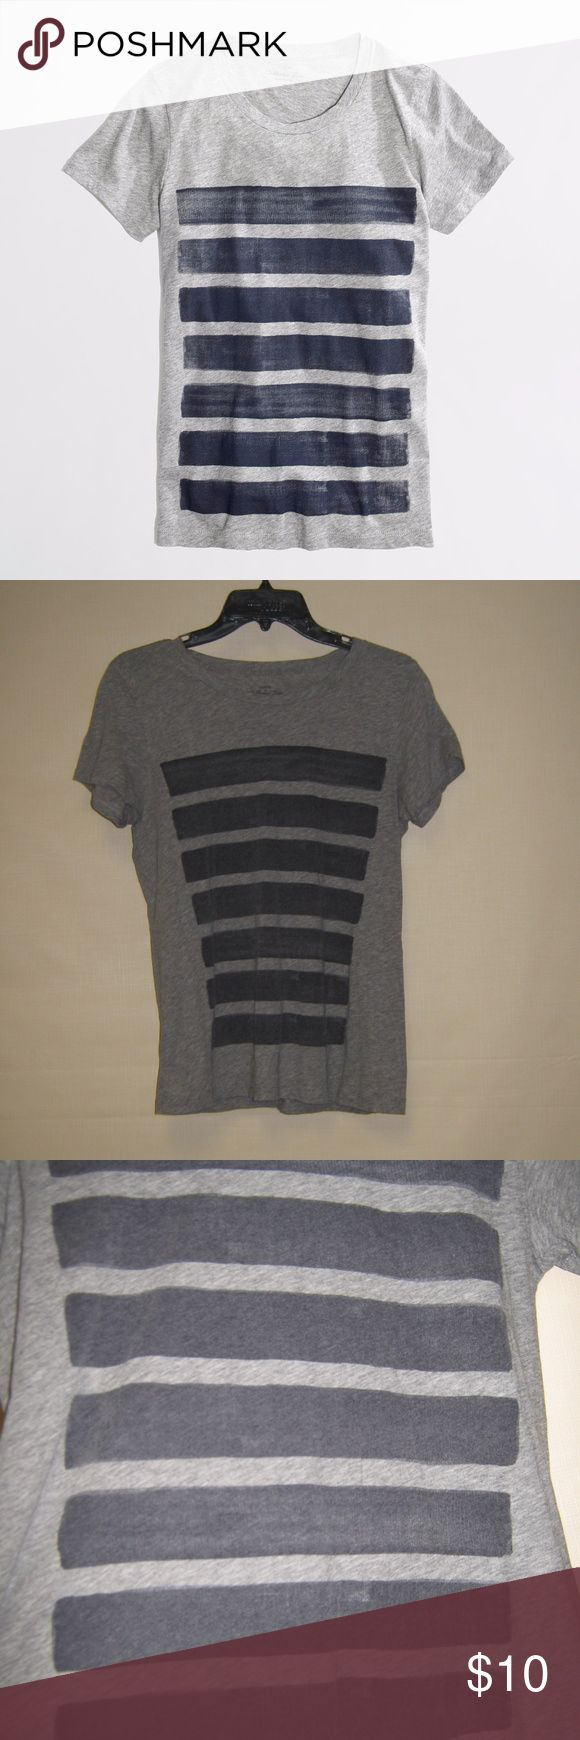 """JCrew Factory Heathered Bar Stripe Collector Tee M J Crew """"Collector's tee"""" in heathered gray, faded blue stripes on front as part of the design. EUC. Super soft and comfy.  Smoke free, pet free home, offers welcome! J. Crew Factory Tops Tees - Short Sleeve"""